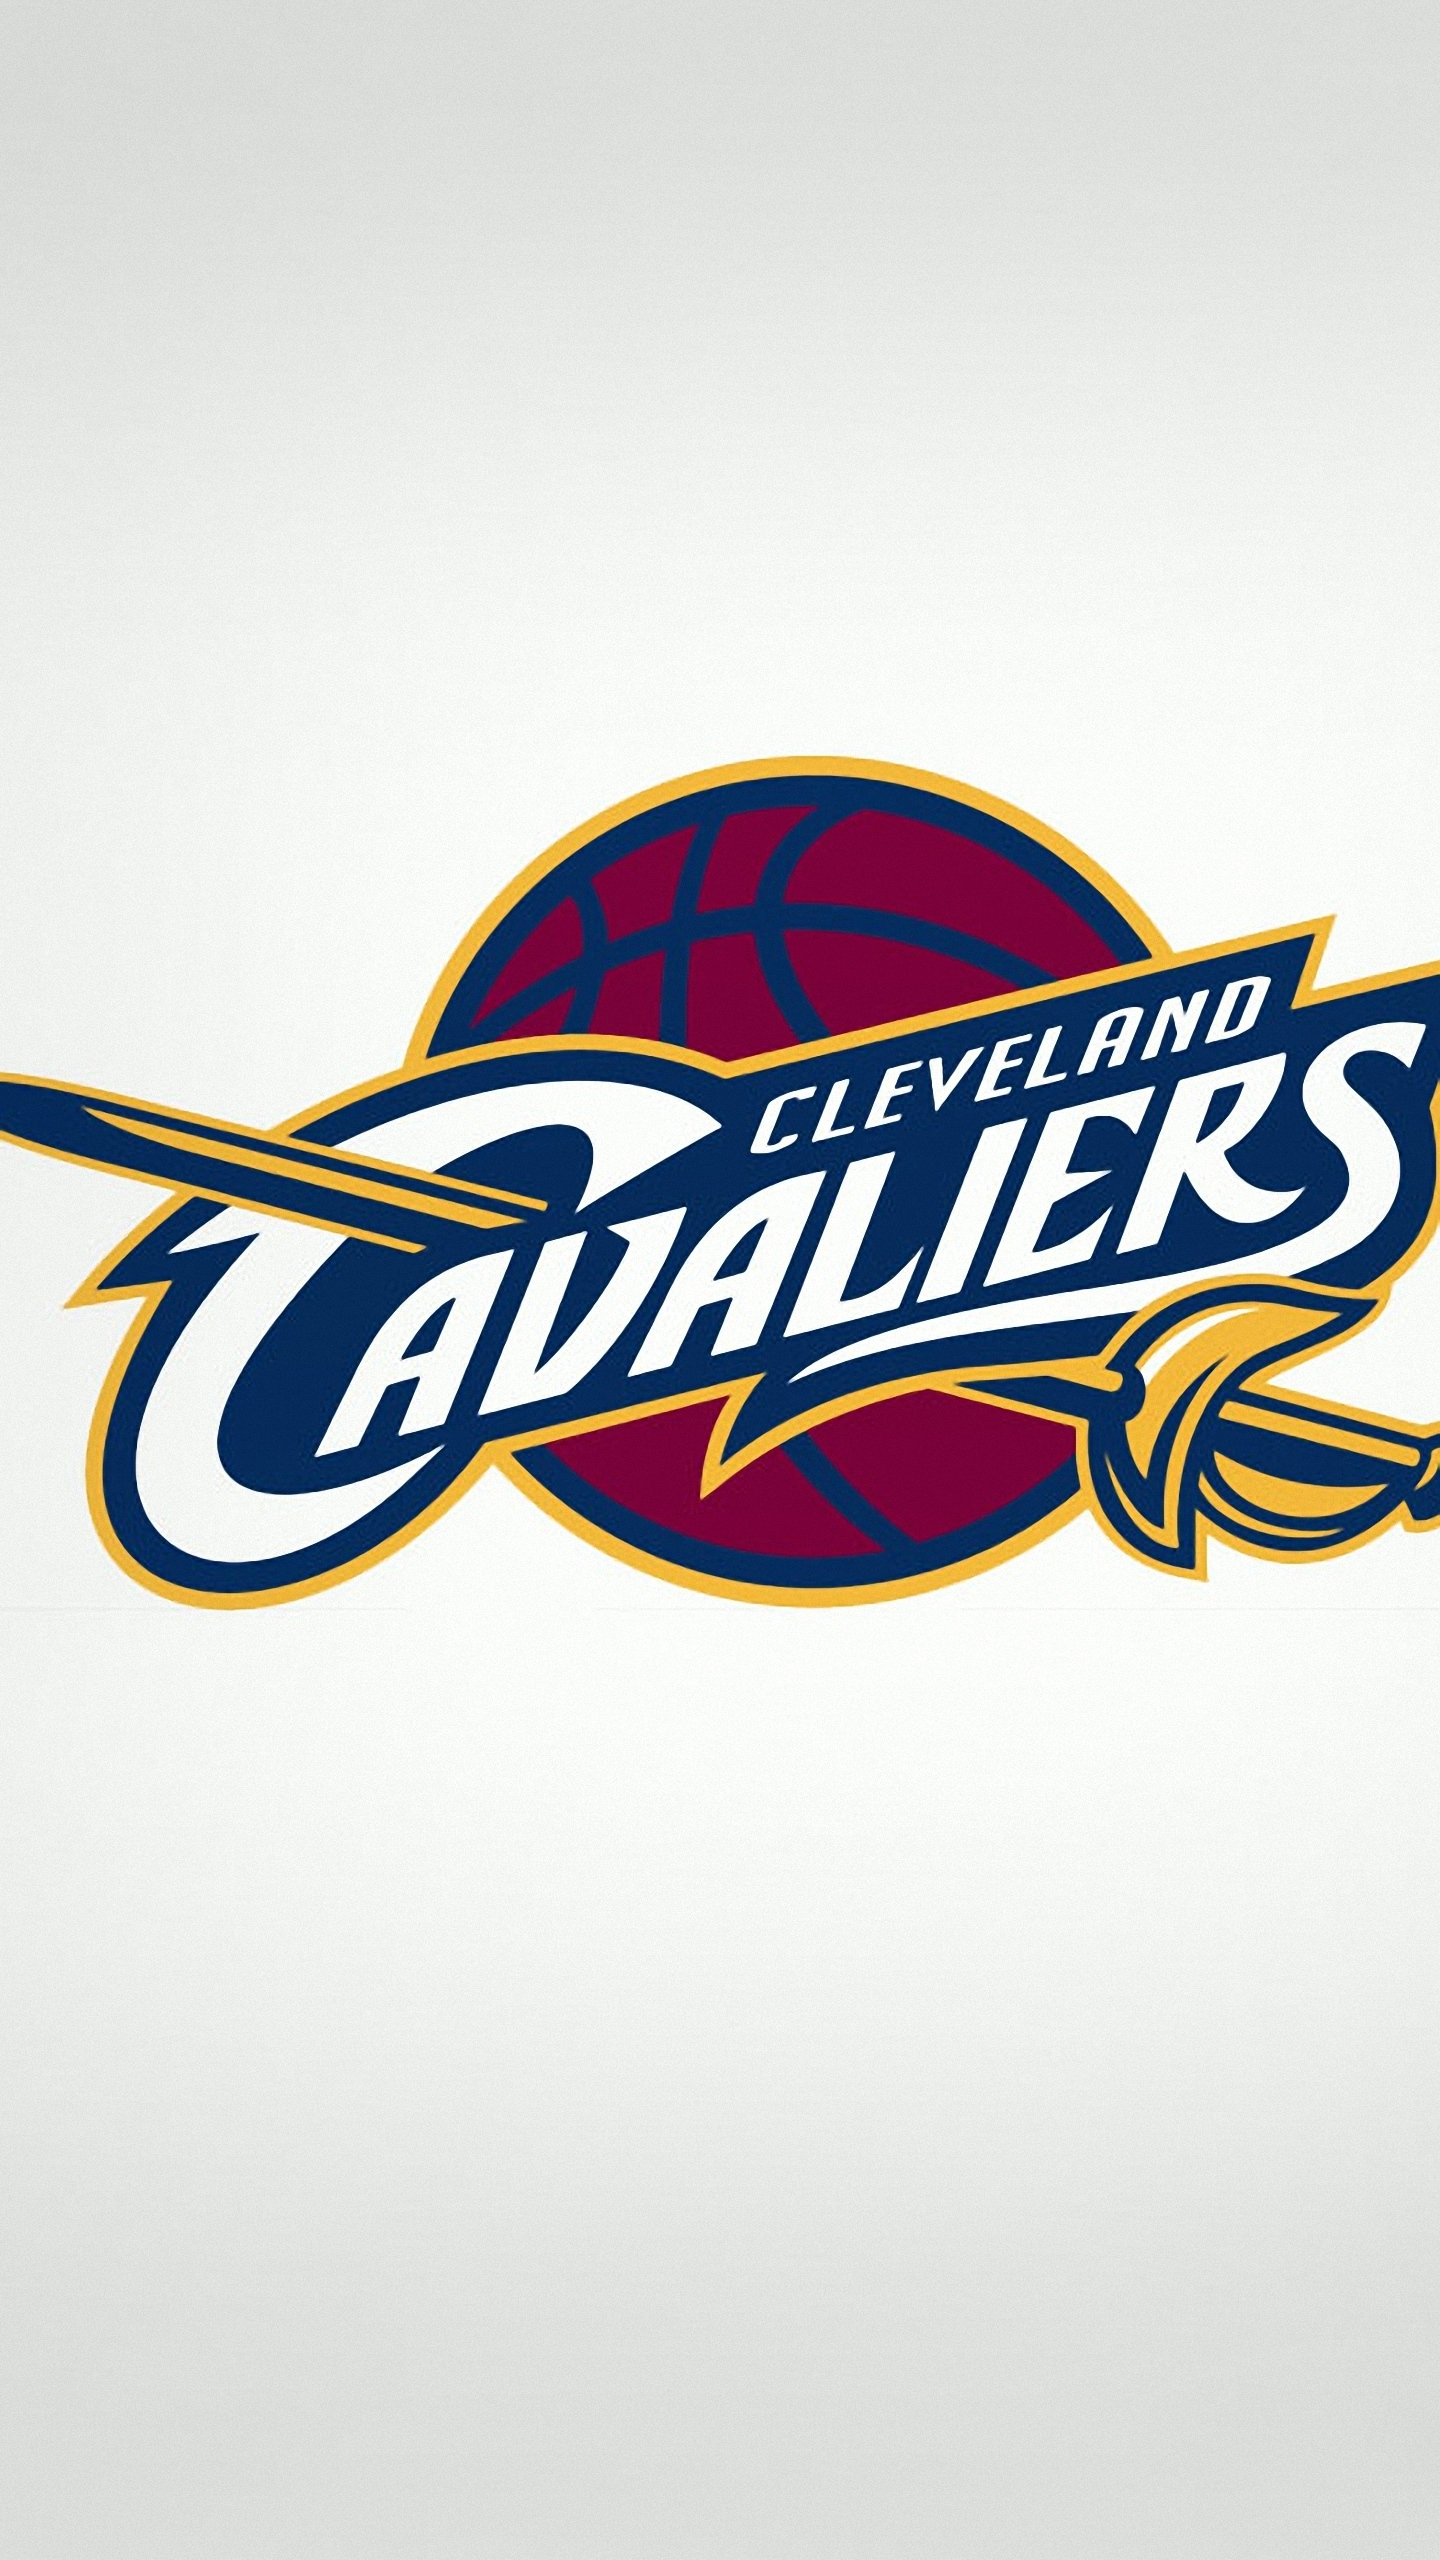 cleveland cavaliers htc one m9/x9 wallpapers hd 1440x2560